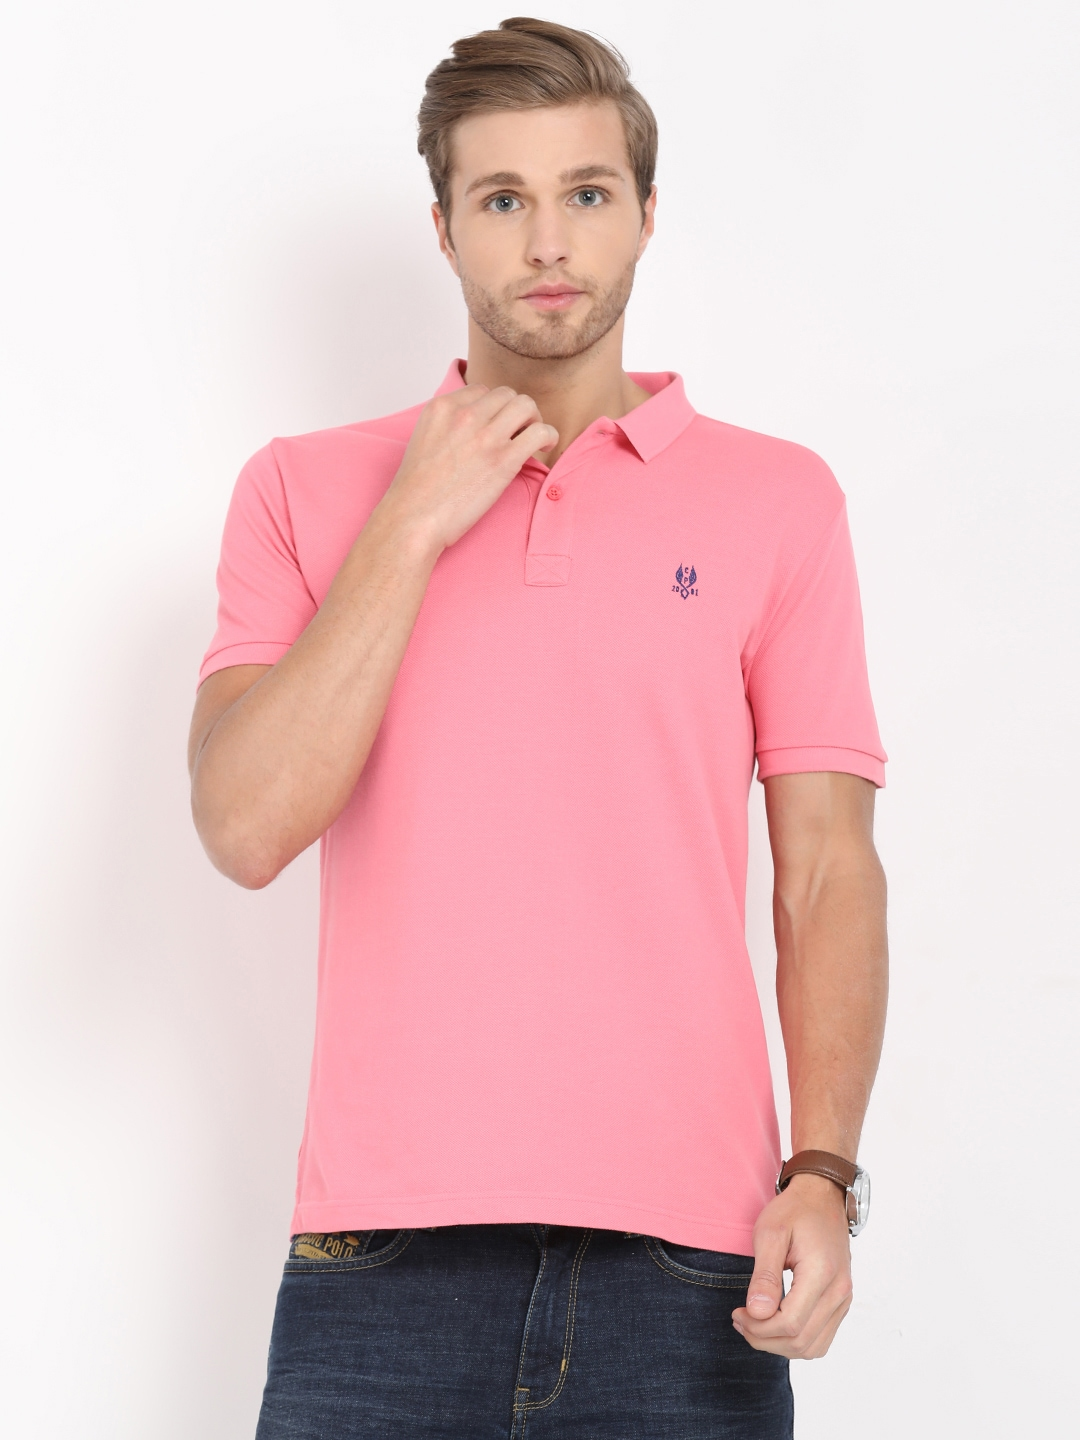 0aeb9f683 Classic Polo T Shirts India - DREAMWORKS